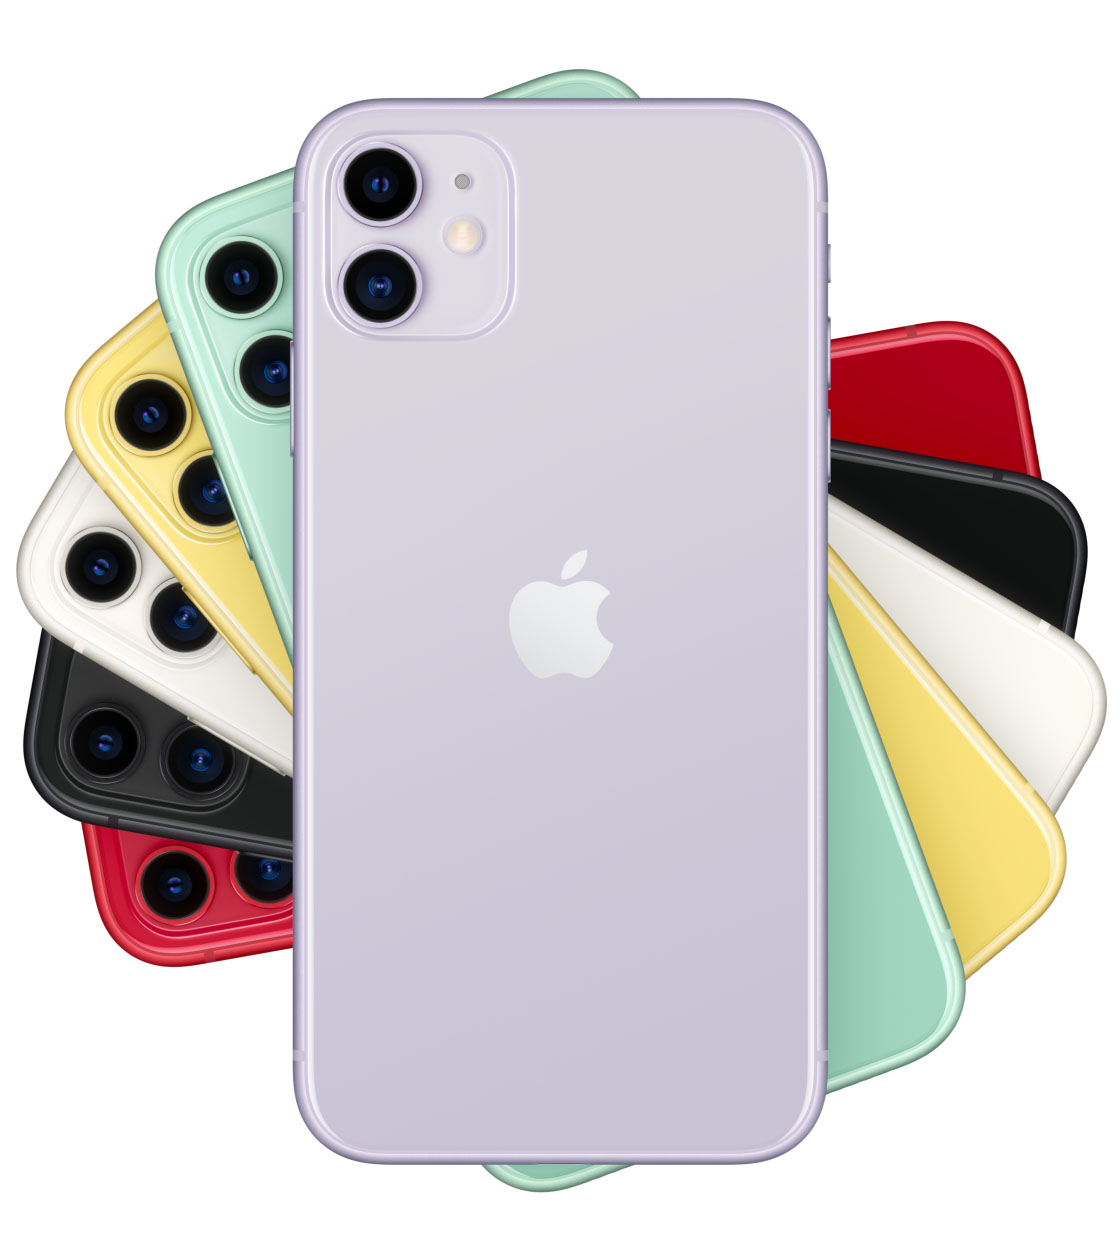 Best Iphone 11 Wallpaper: IPhone 11 Demand Reportedly Better Than Expected, Green